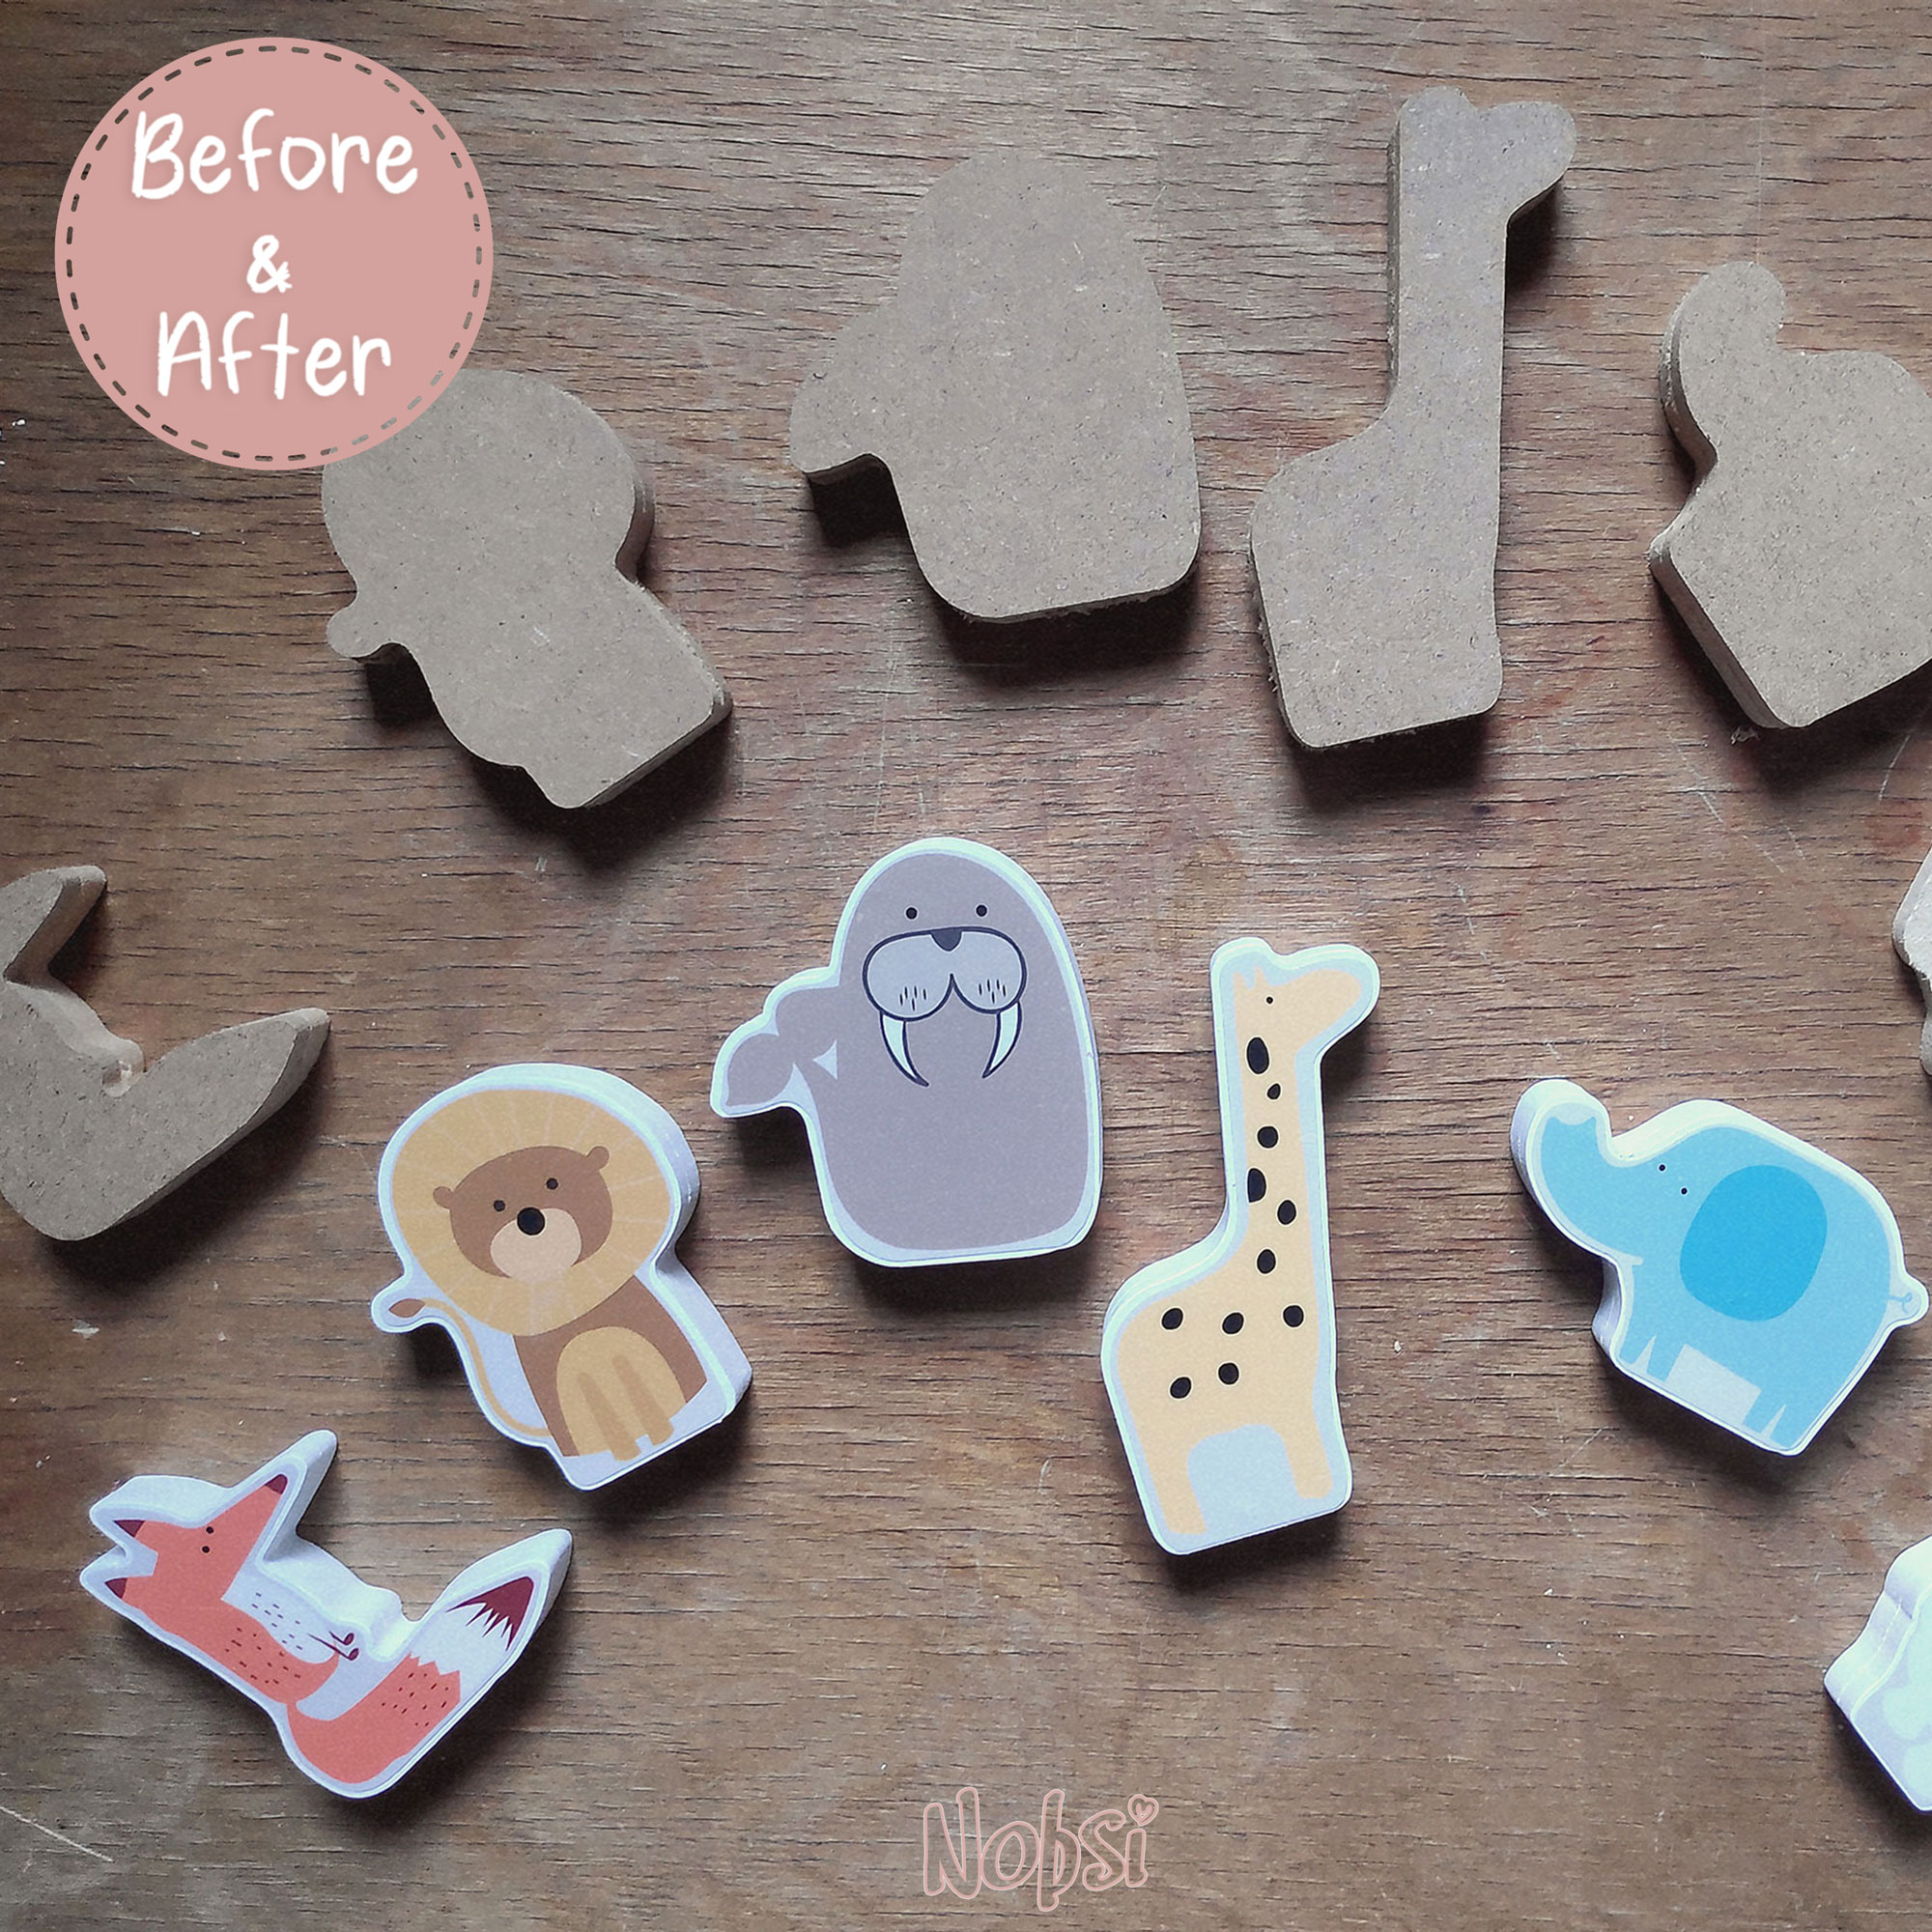 Handmade Wooden Toys - Made by Mum